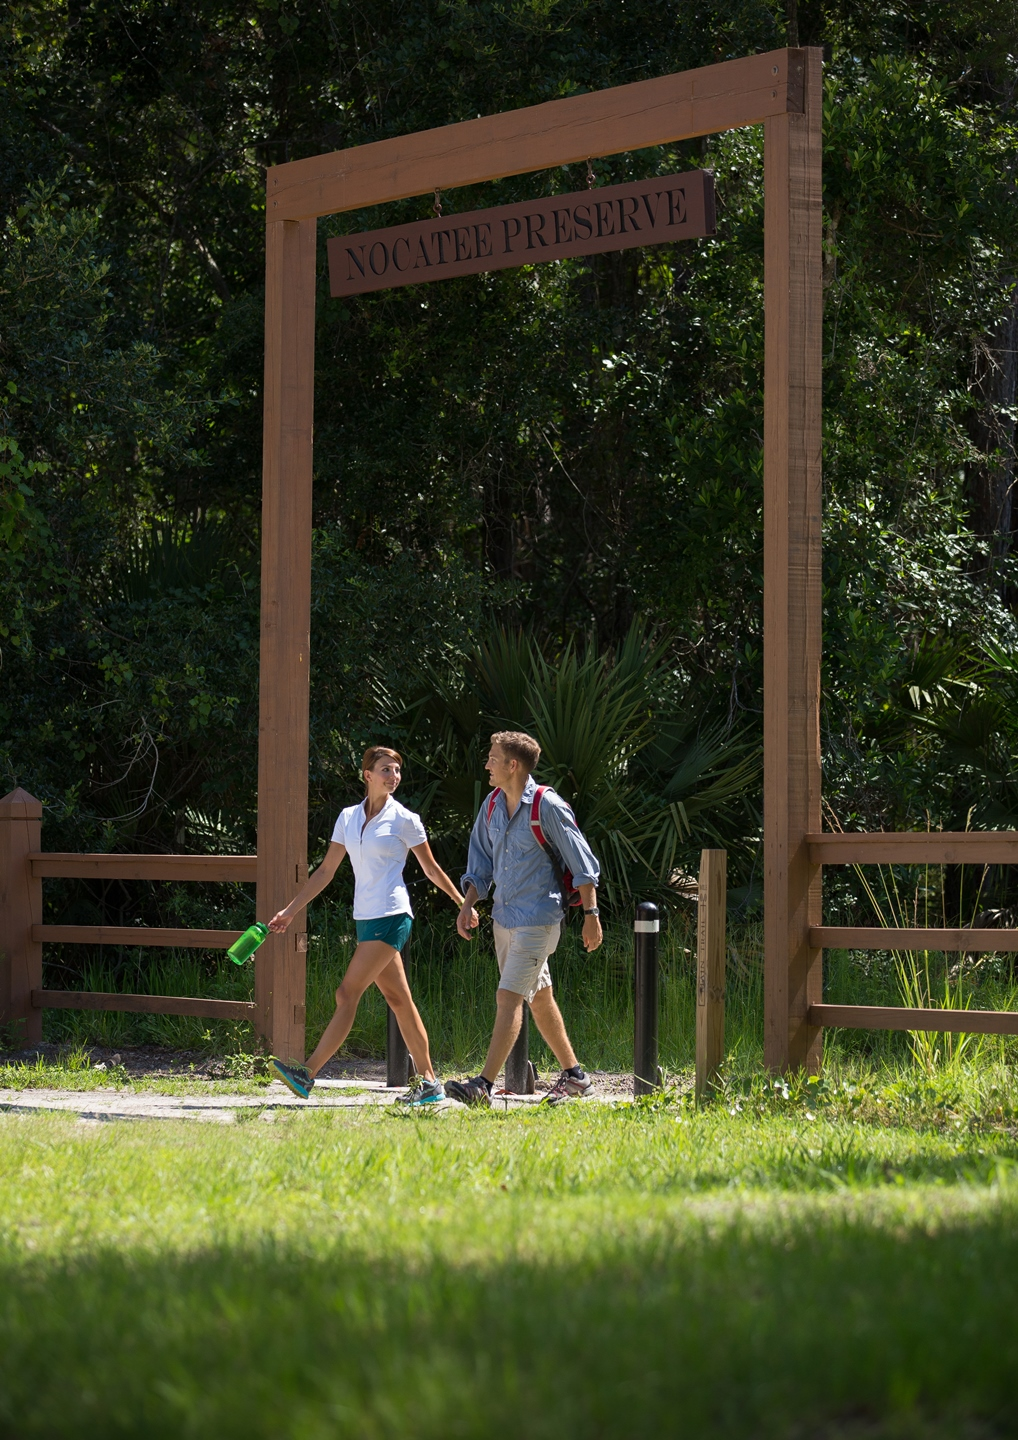 Trail walking at The Nocatee Preserve